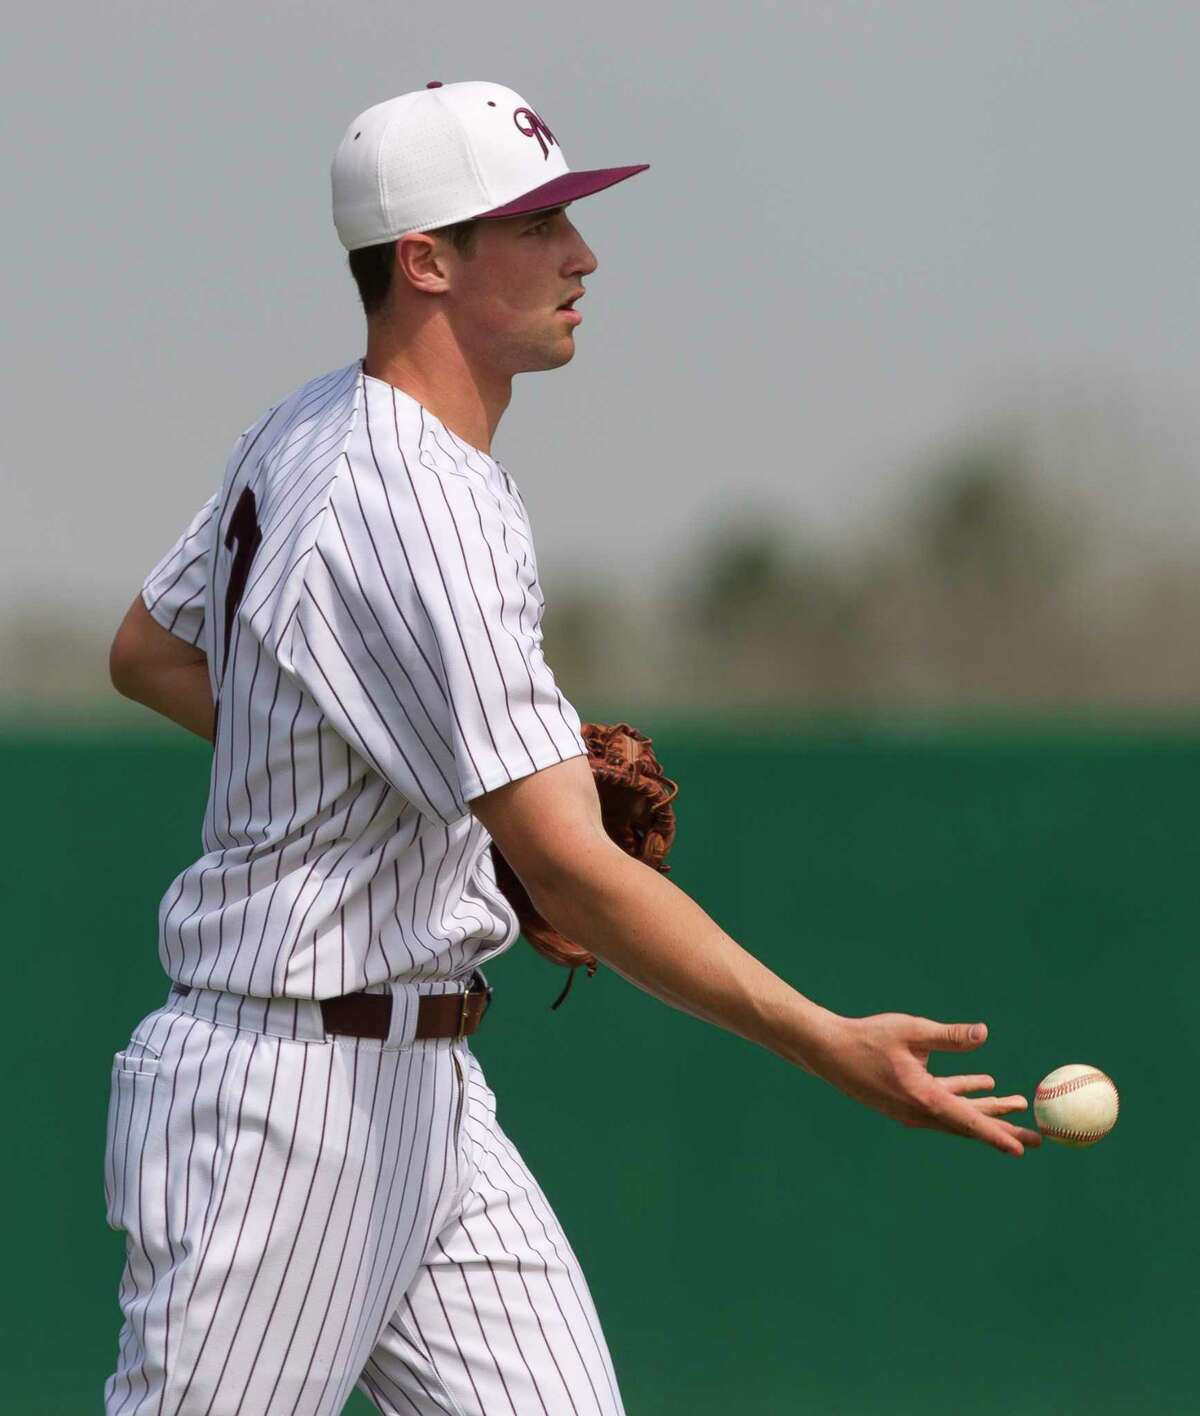 Magnolia starting pitcher Adam Kloffenstein tosses the ball to first baseman Seth Wehunt for an out in the second inning of a high school baseball game against Coppell during the Montgomery-Brenham Tournament, Saturday, March 3, 2018, in Montgomery.